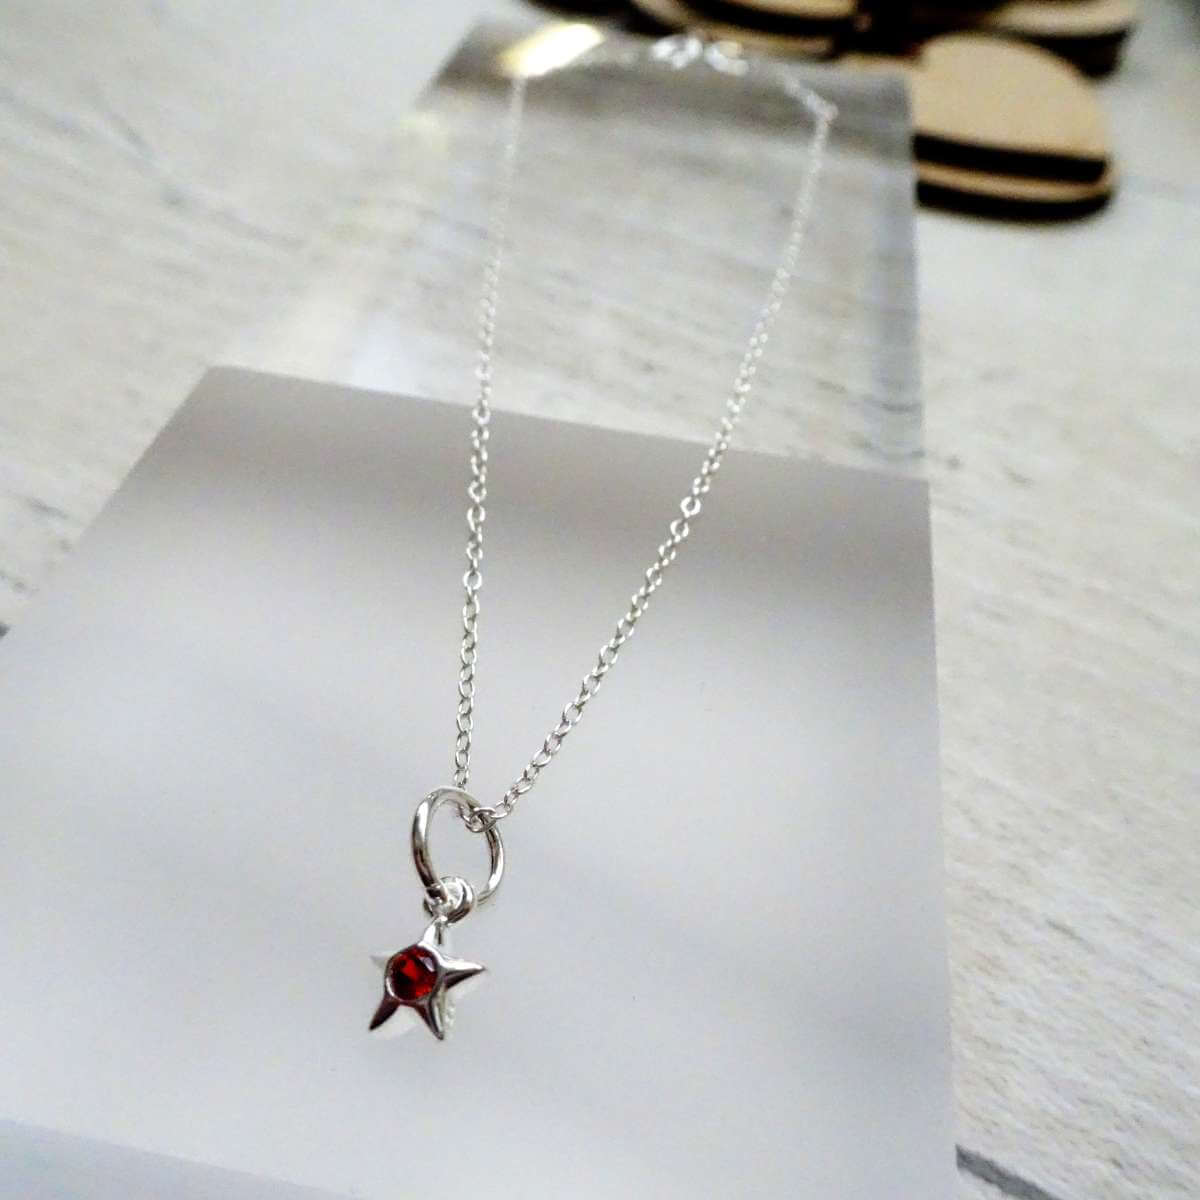 Fine Sterling Silver Belcher Anklet with CZ Crystal August Birthstone Star Charm - 10 Inches